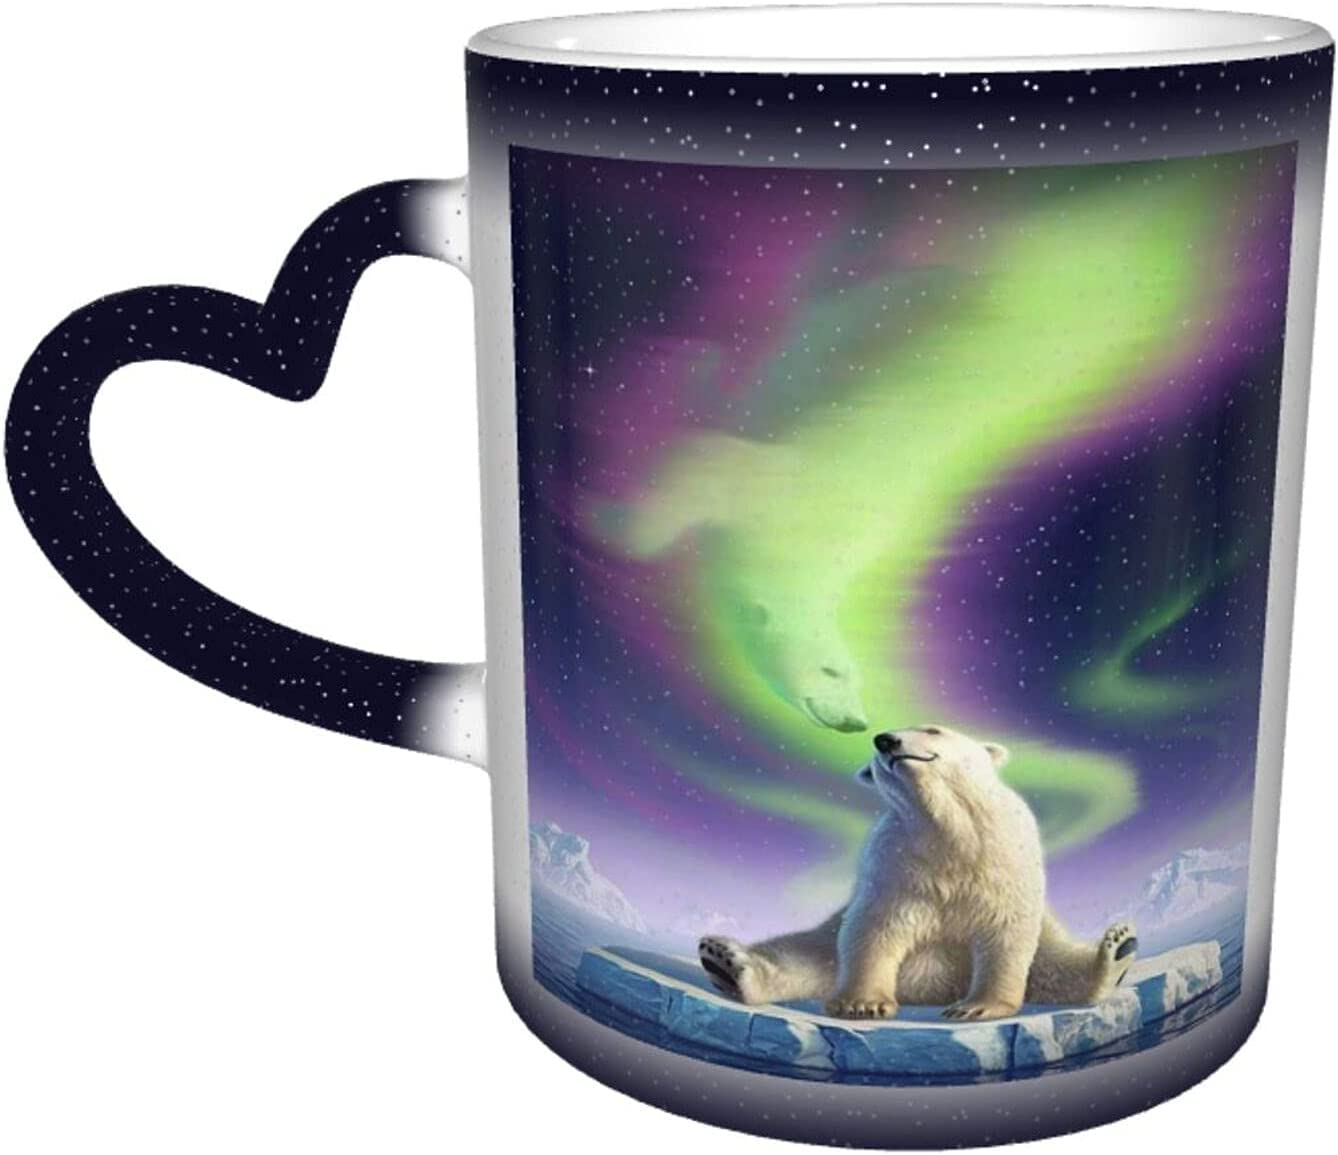 Universal Max 52% OFF Ceramic Heat Sensitive Color Changing Large special price Cup Coffee Cups